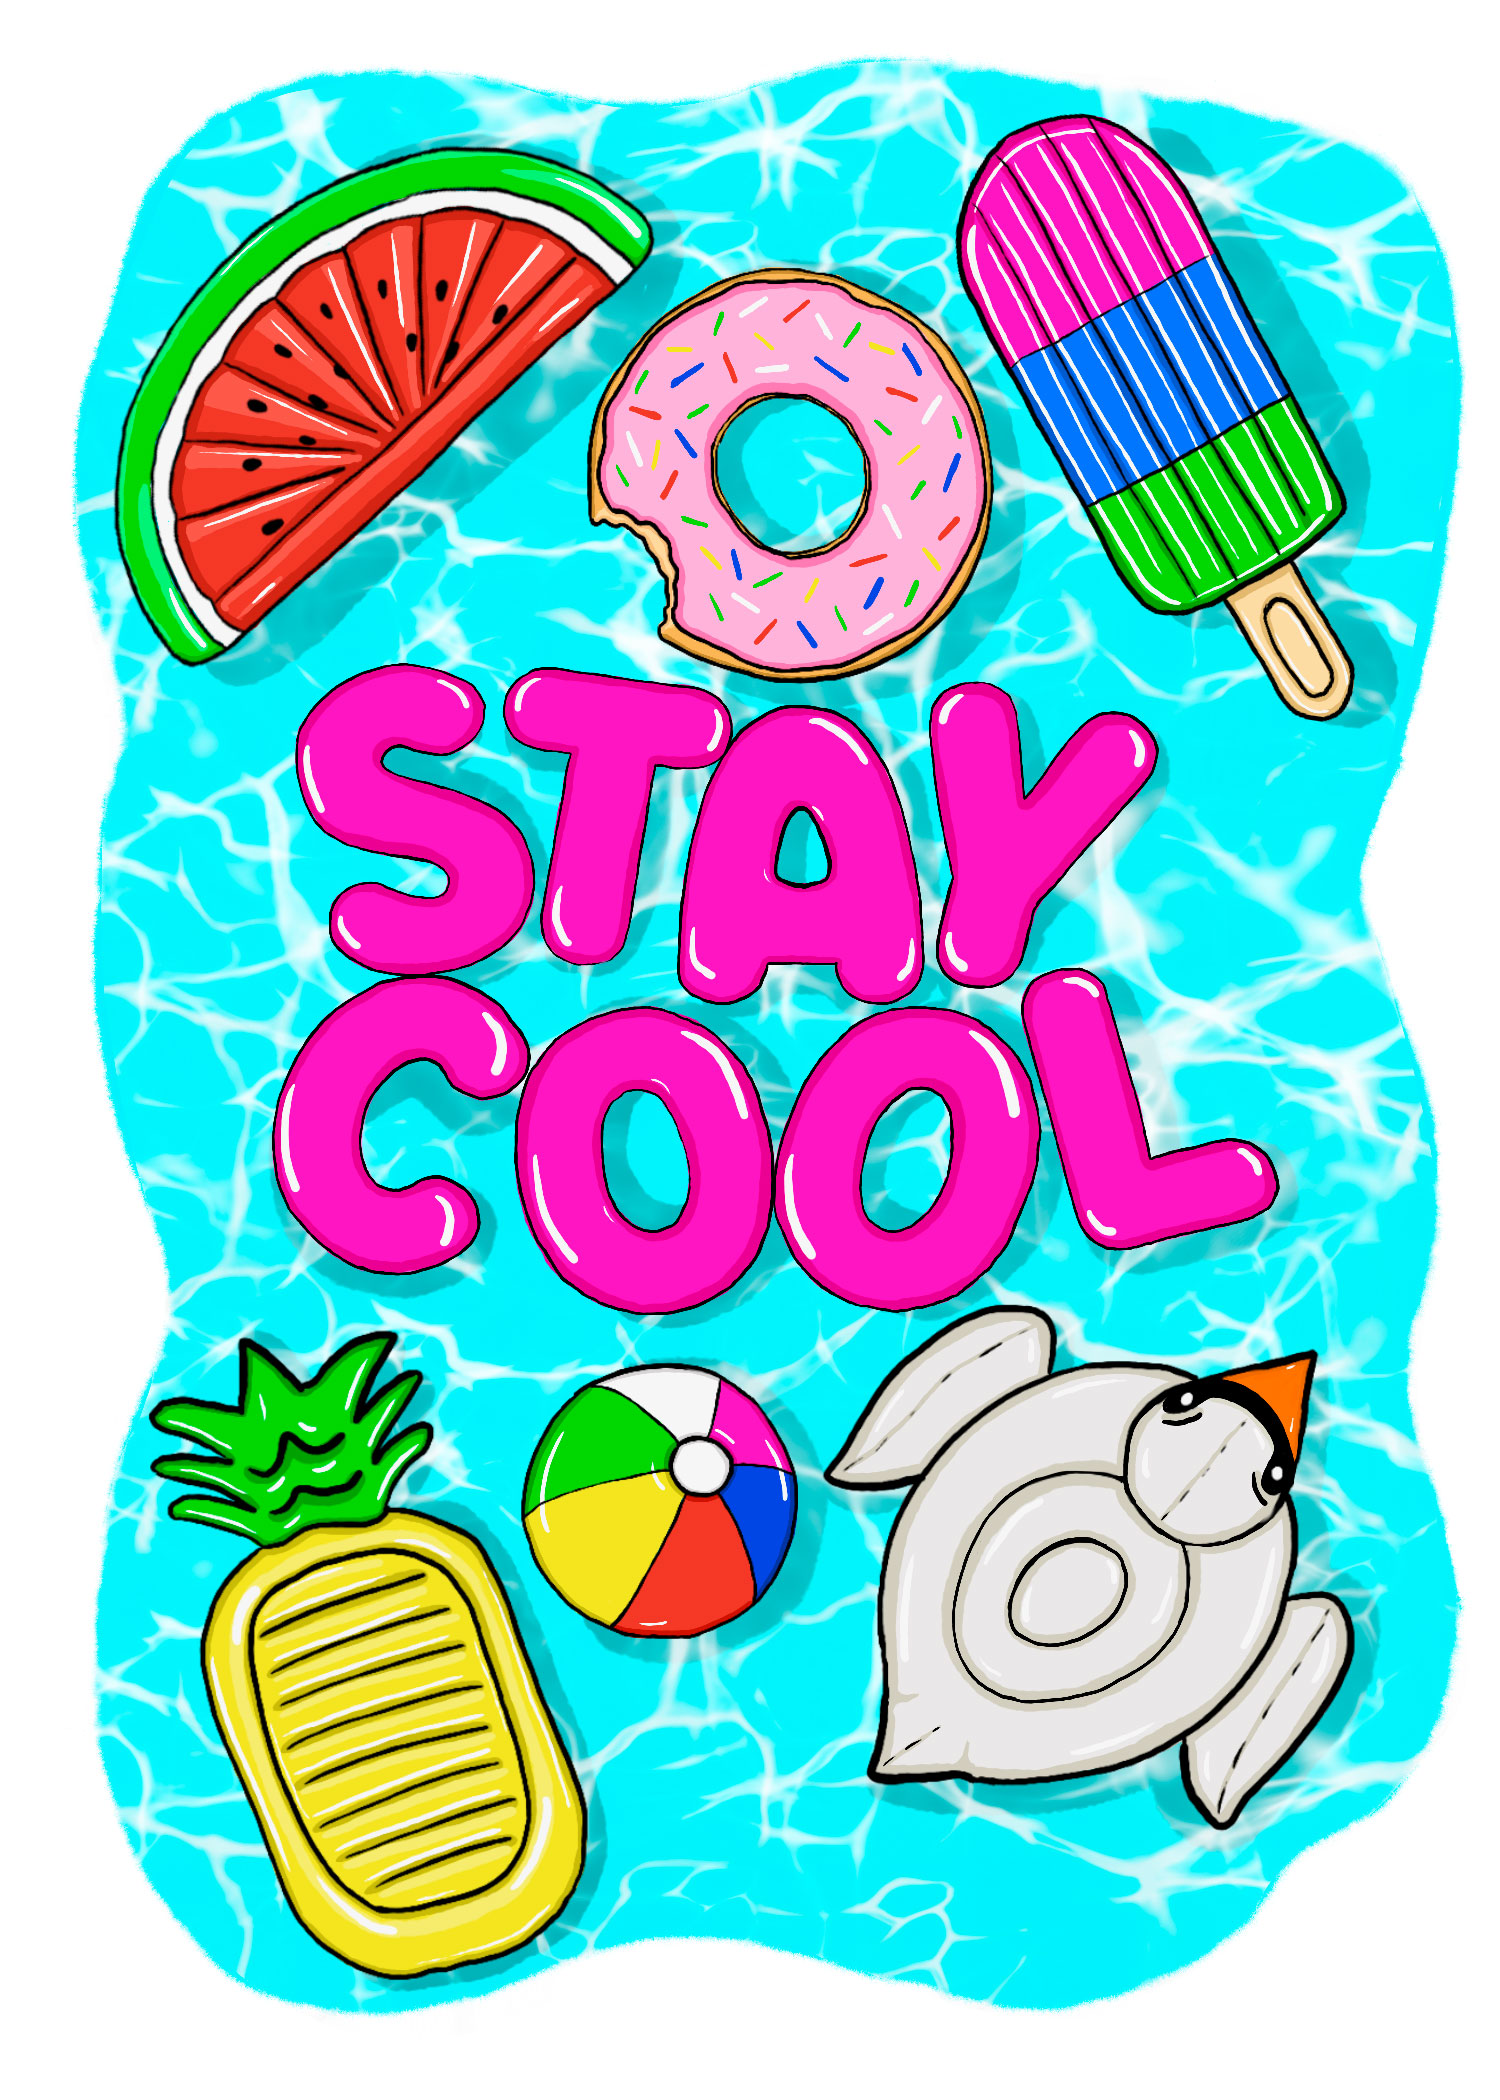 Randi Pace - Stay_Cool_Pool_Floats.jpg